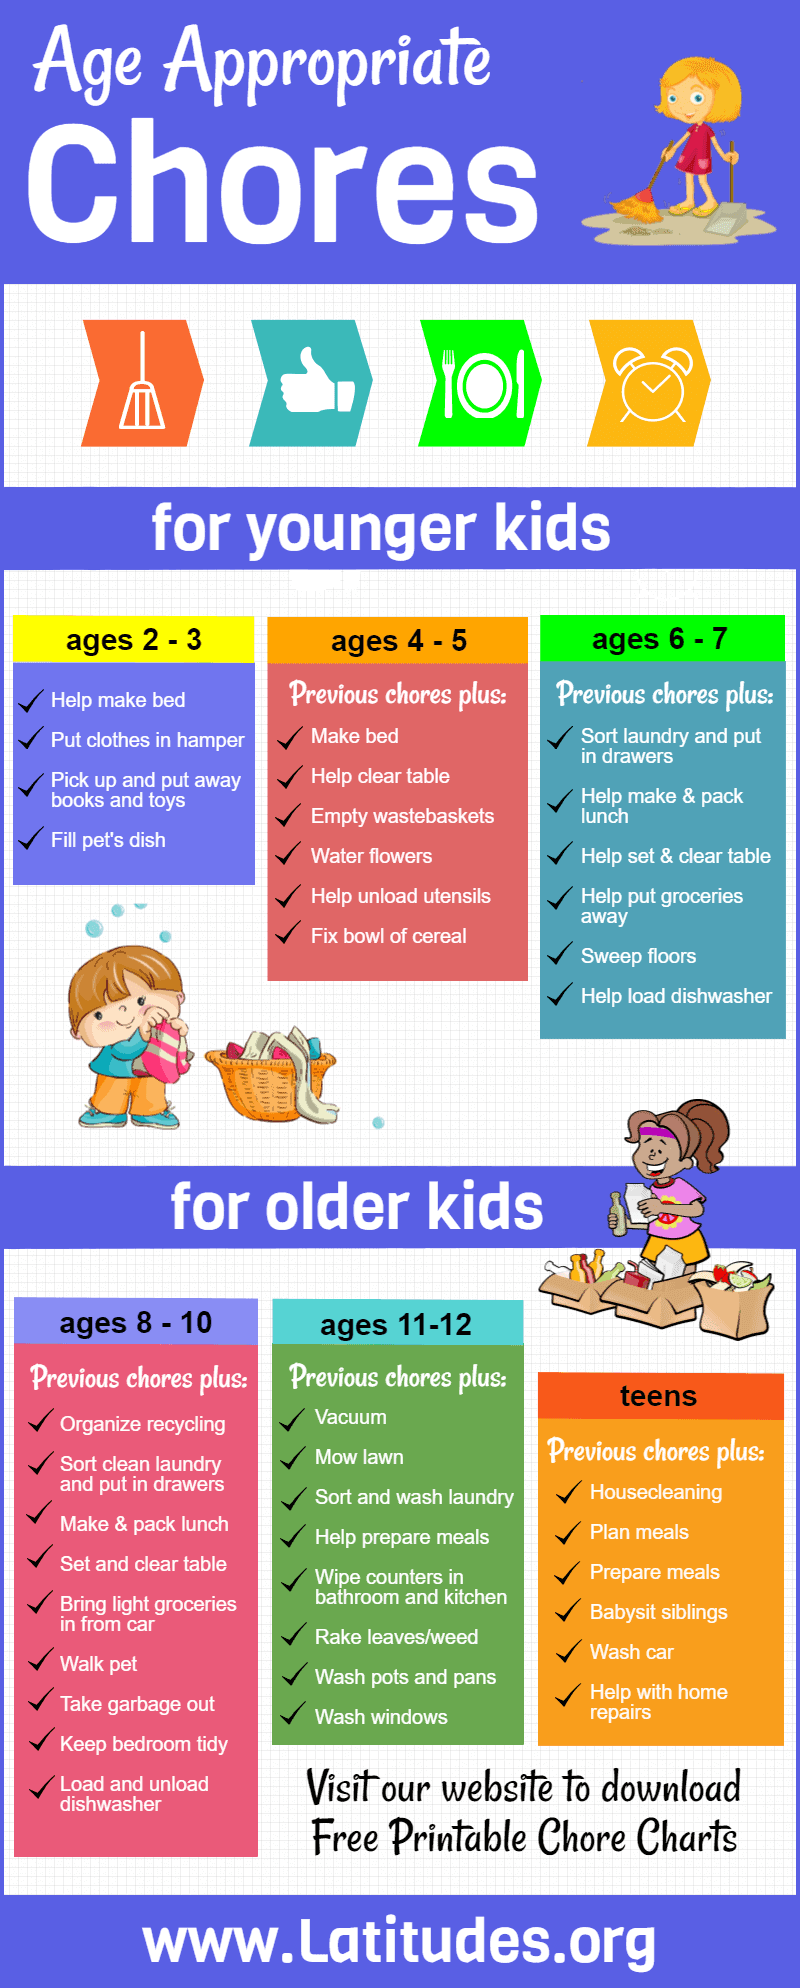 I love this! Makes it super easy to assign chores to my kids! A great resource for all moms and dads!